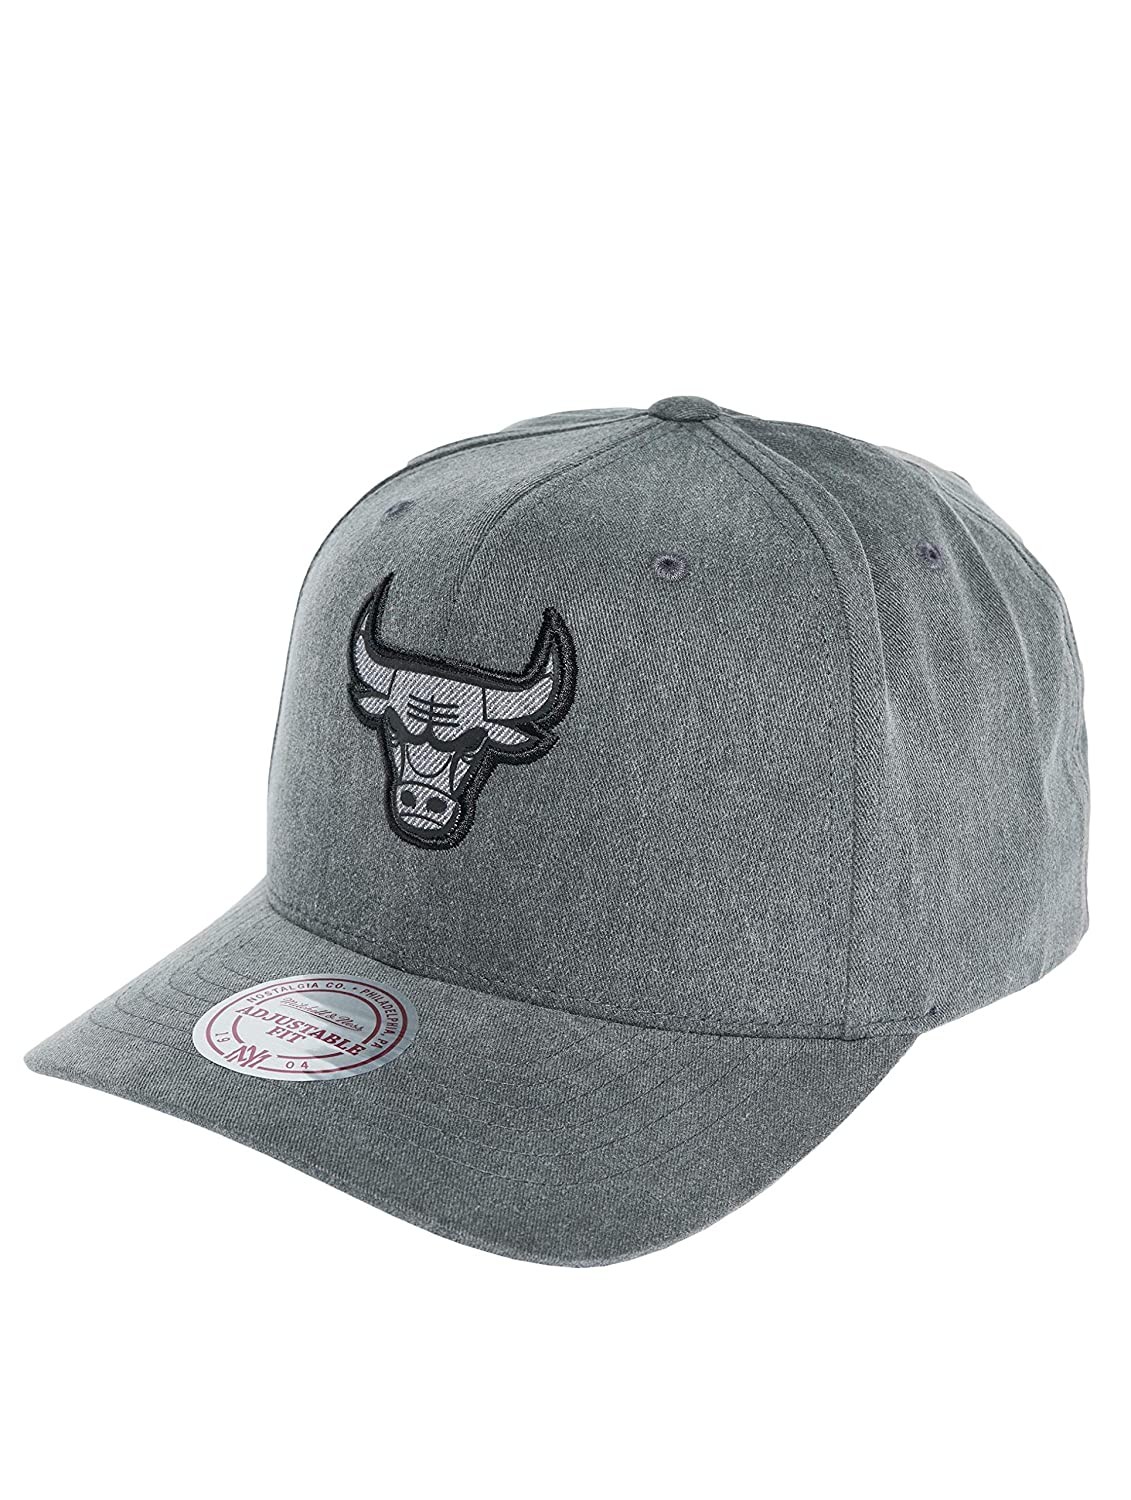 Mitchell & Ness Chicago Bulls Black INTL263 NBA Washed Heather ...